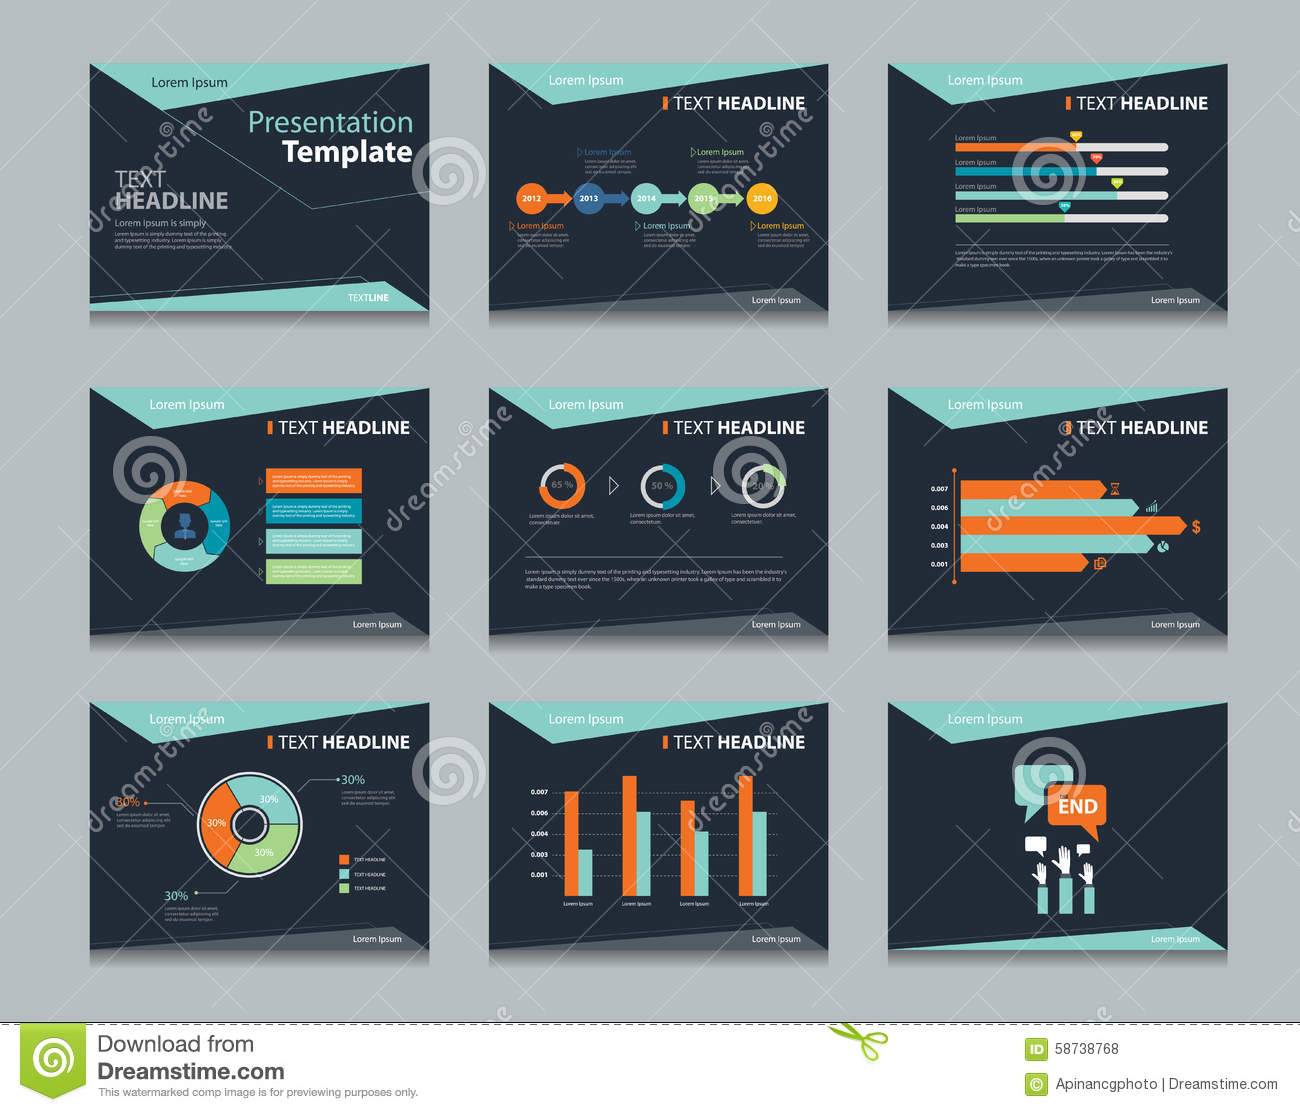 Powerpoint theme template yeniscale powerpoint theme template toneelgroepblik Gallery